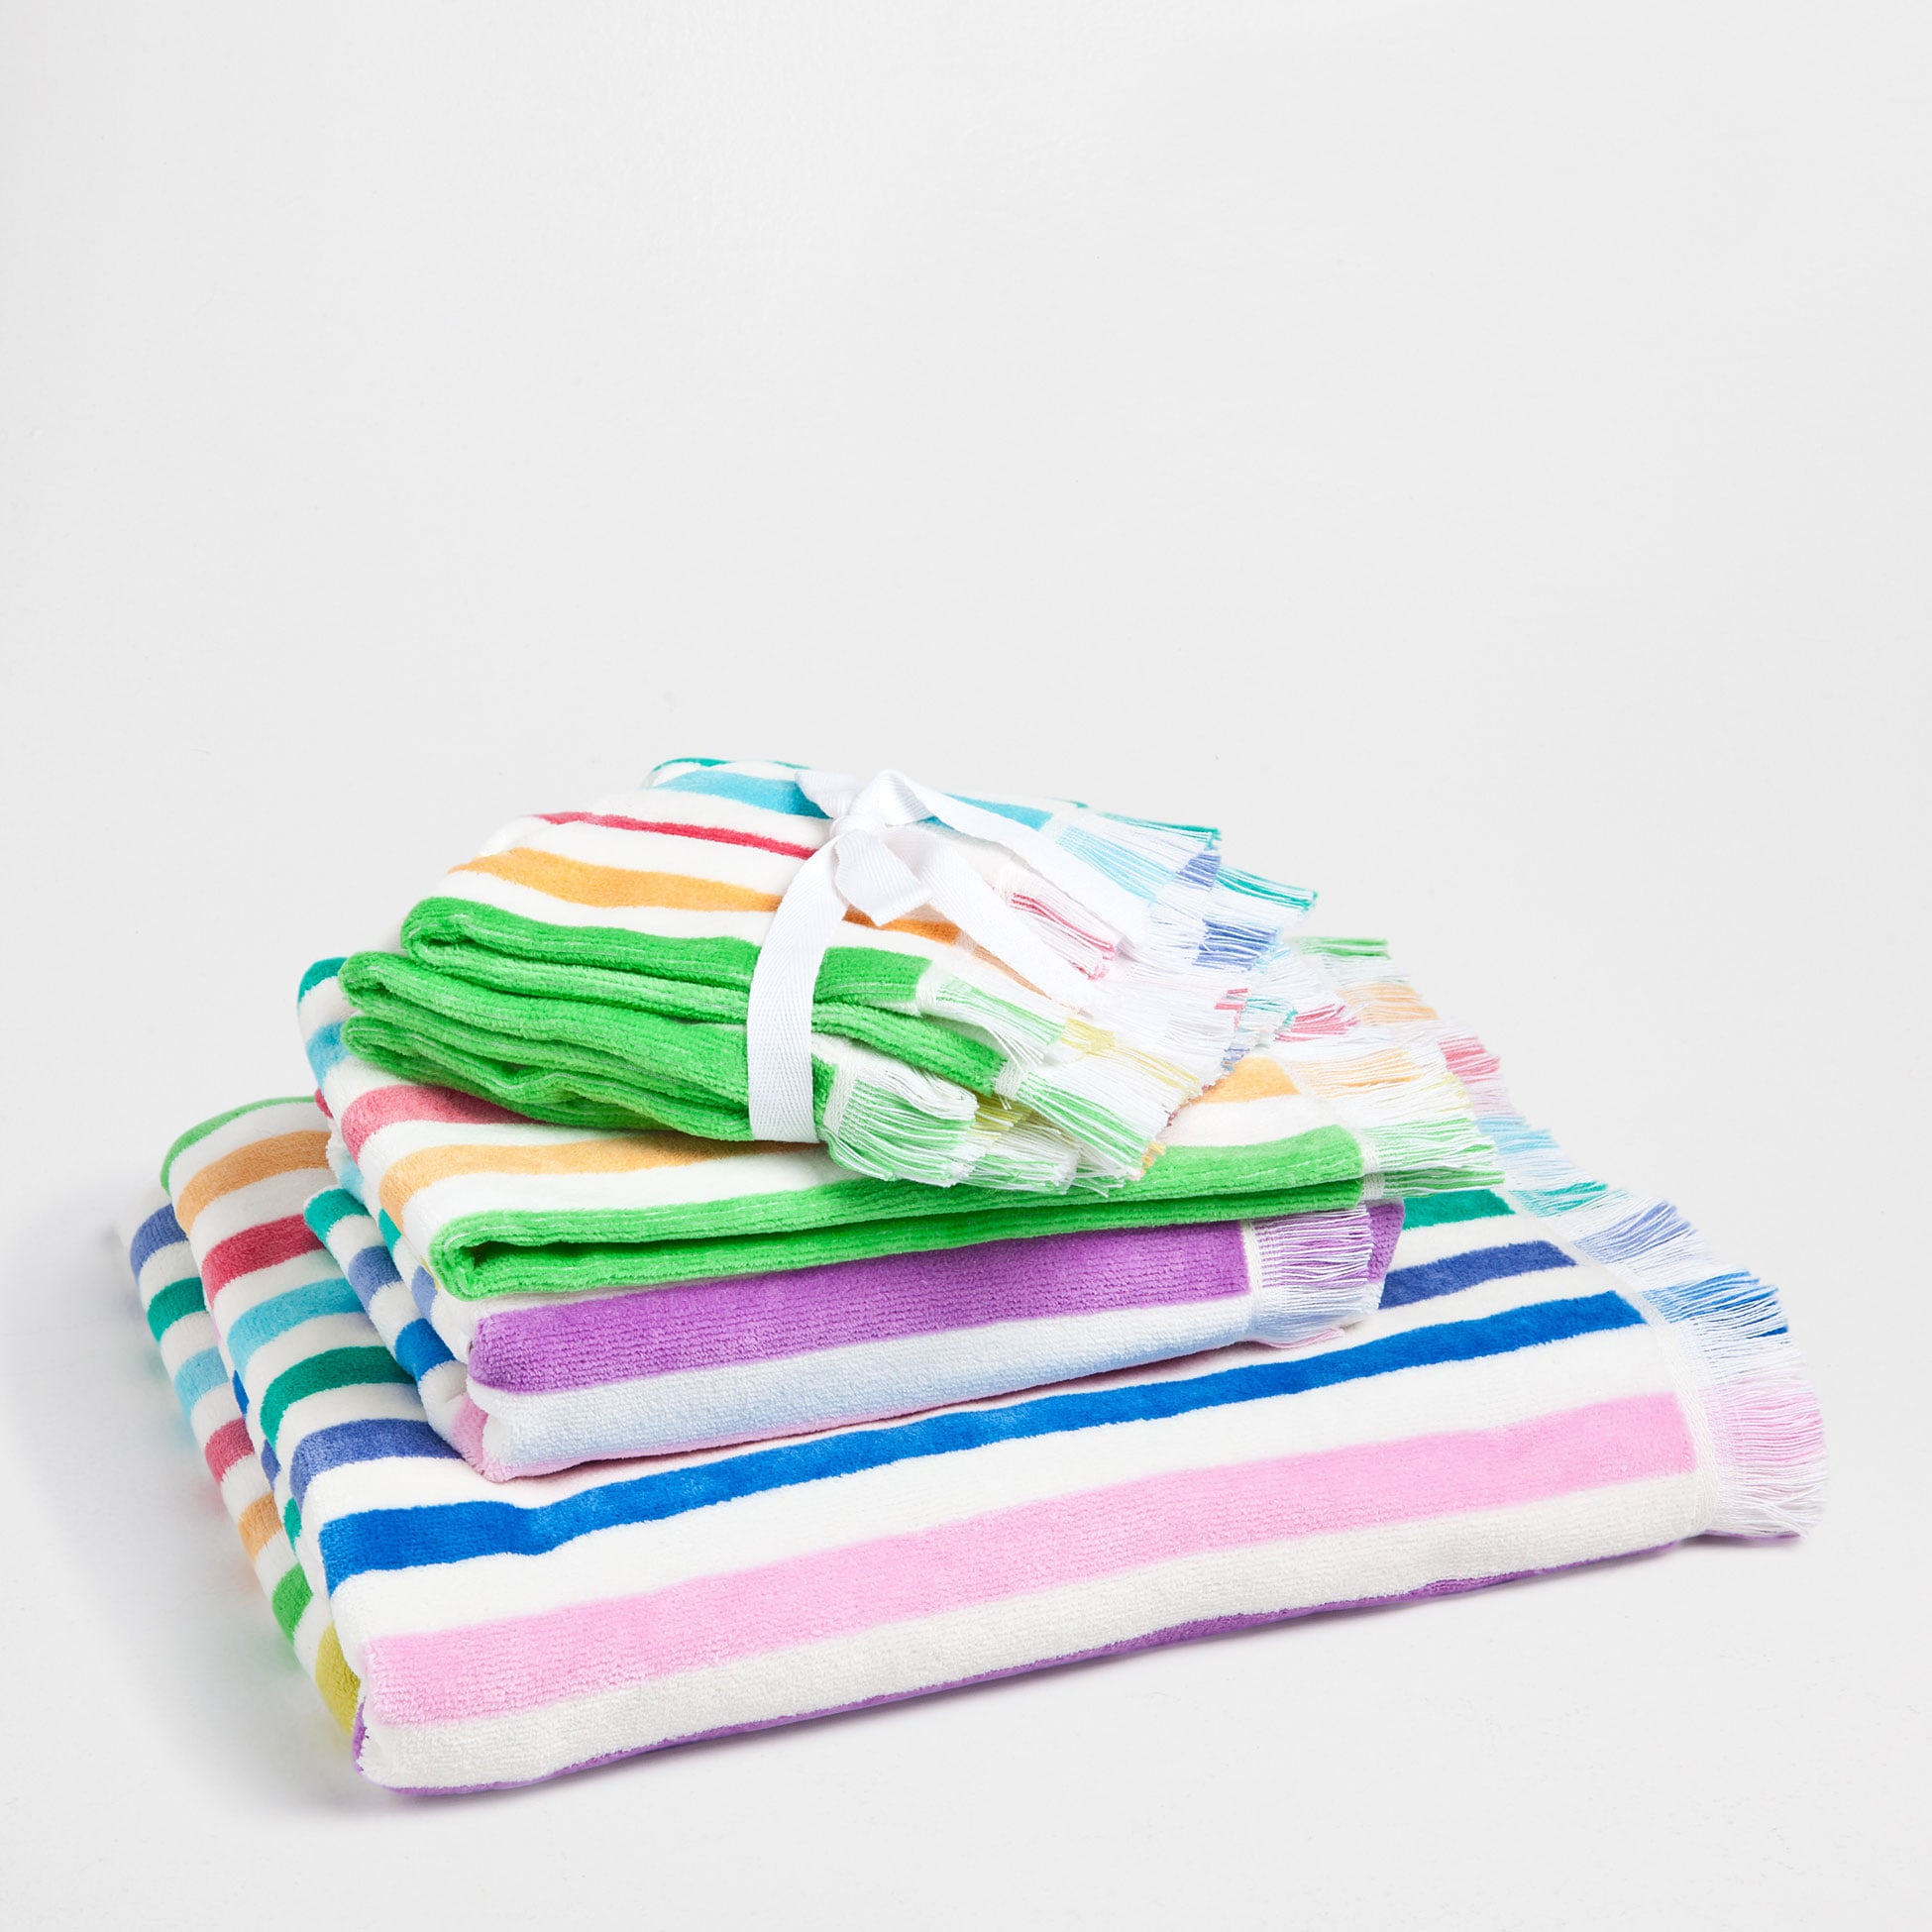 Your bathroom will go from drab to fab simply by folding one of these colorful velour towels ($15 for set of three) on your sink.